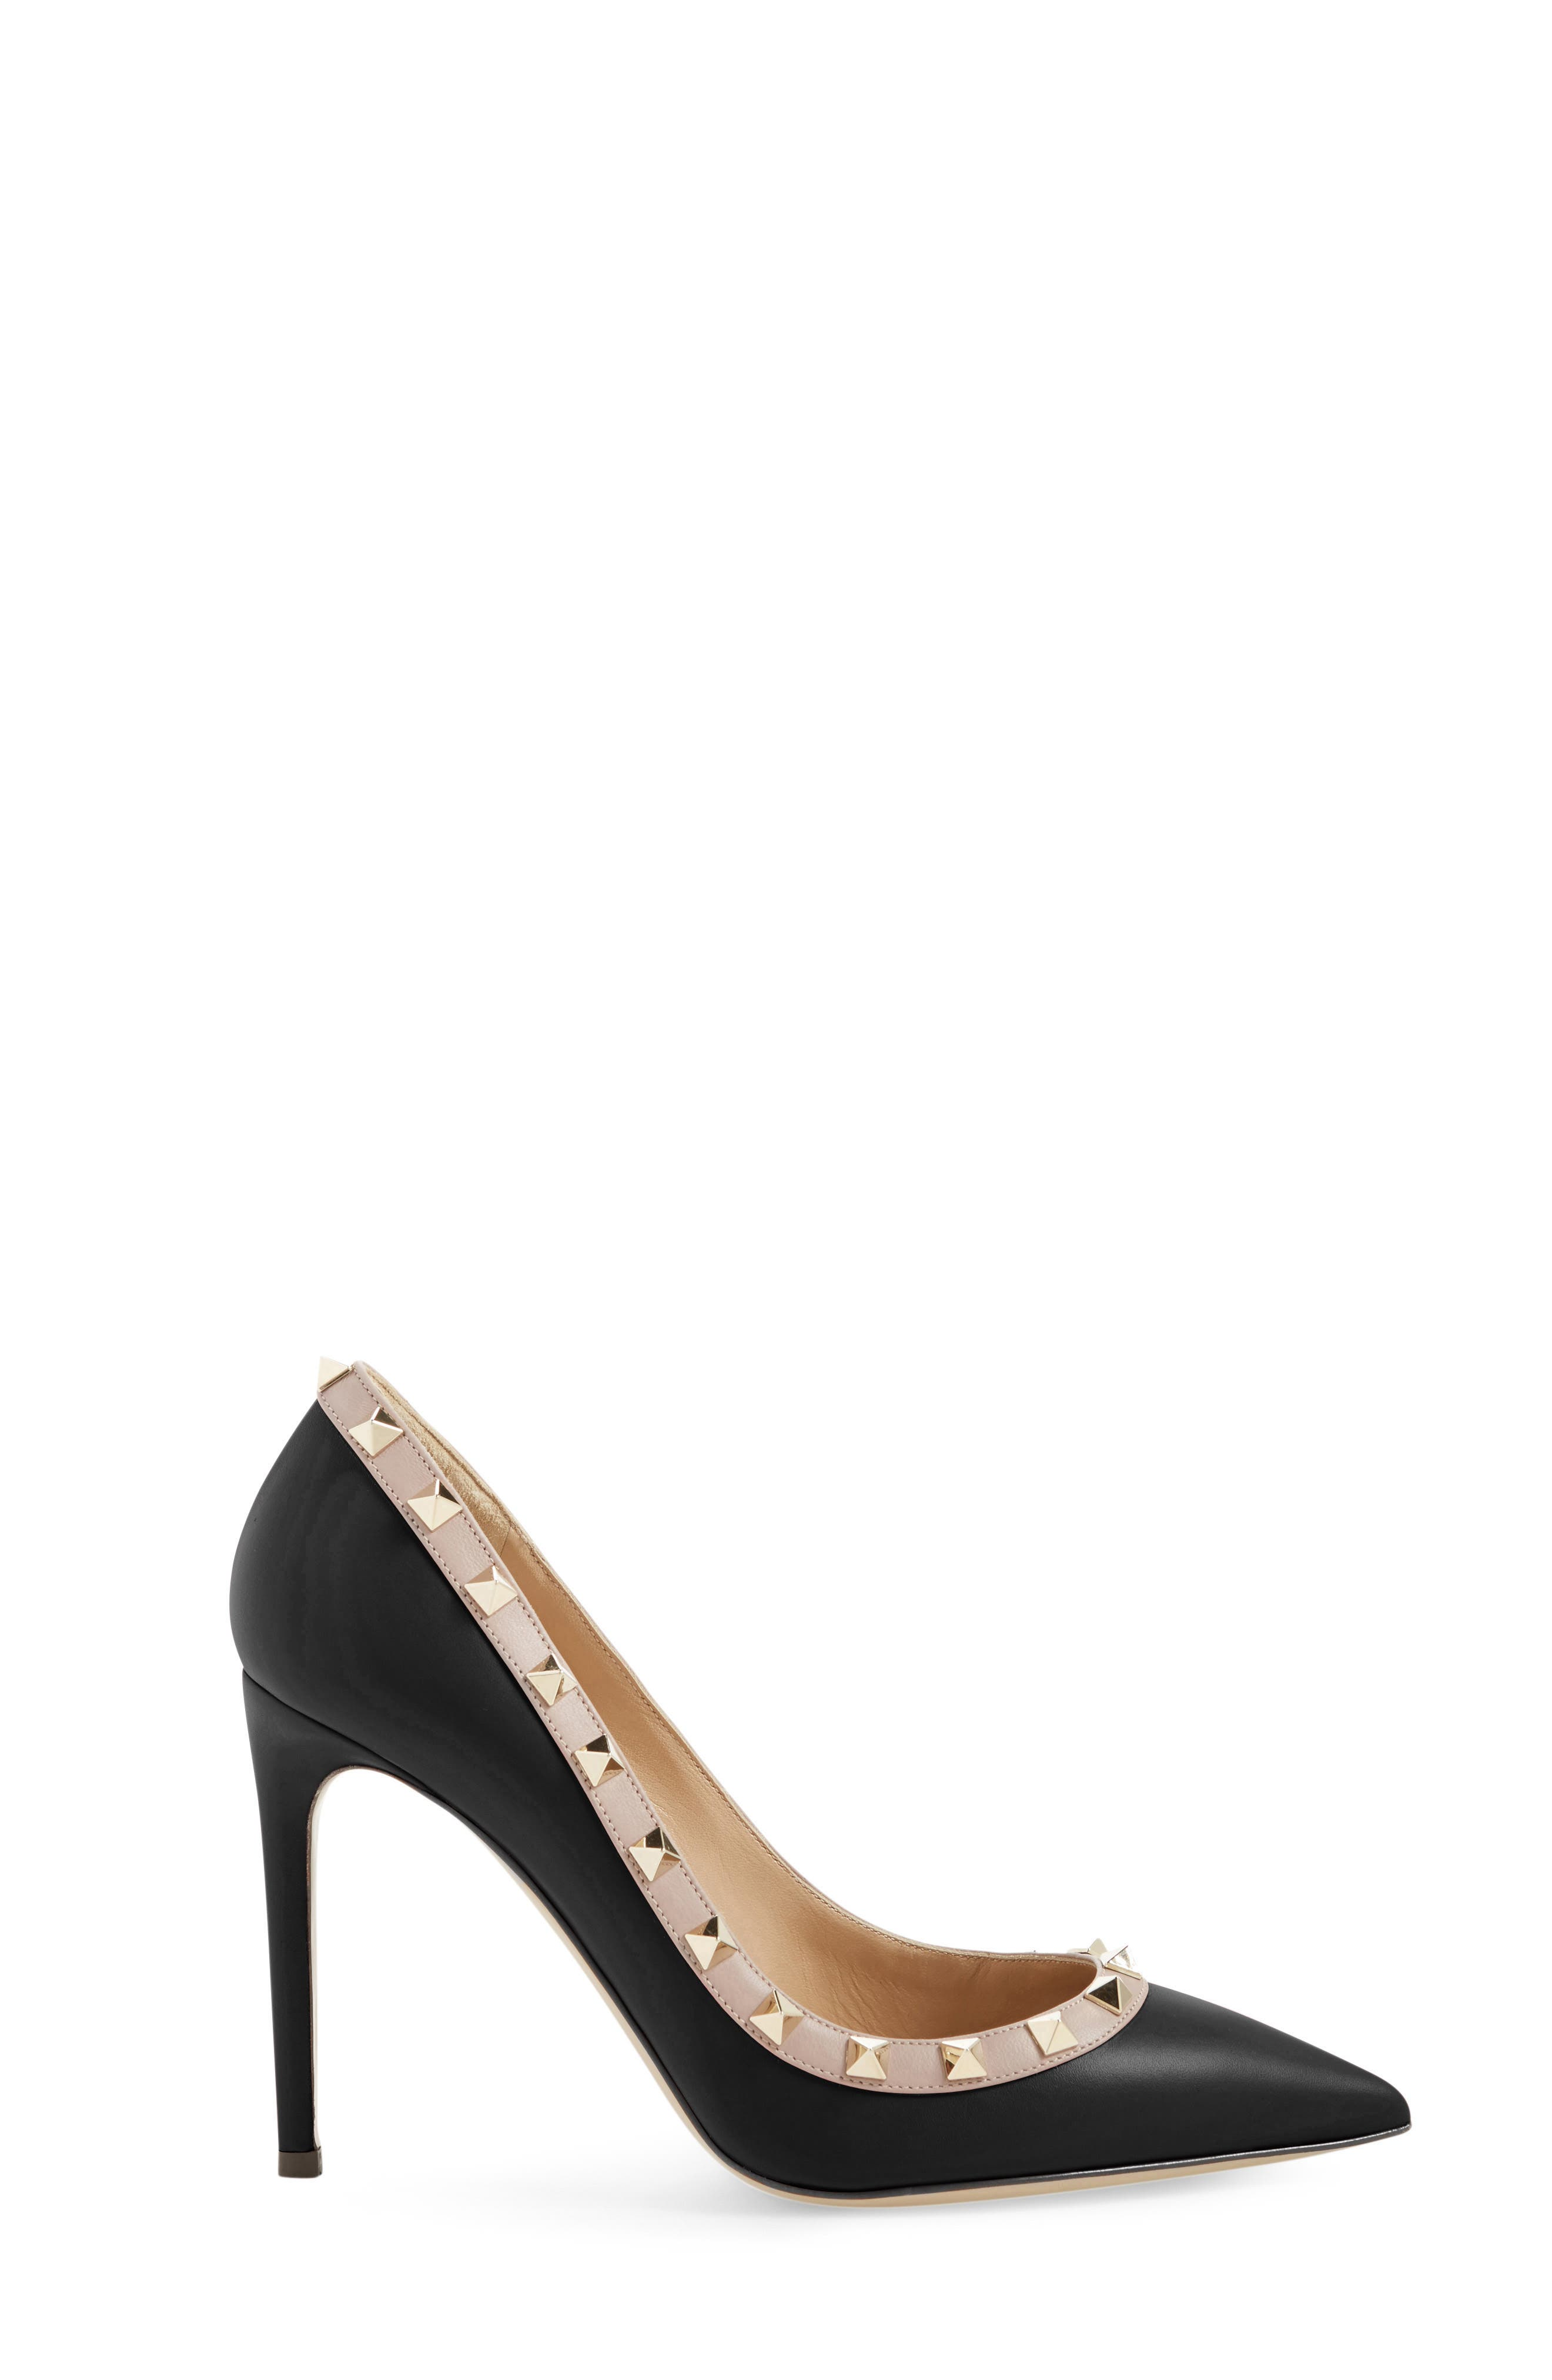 VALENTINO GARAVANI, Rockstud Pointy Toe Pump, Alternate thumbnail 4, color, BLACK/ NUDE LEATHER